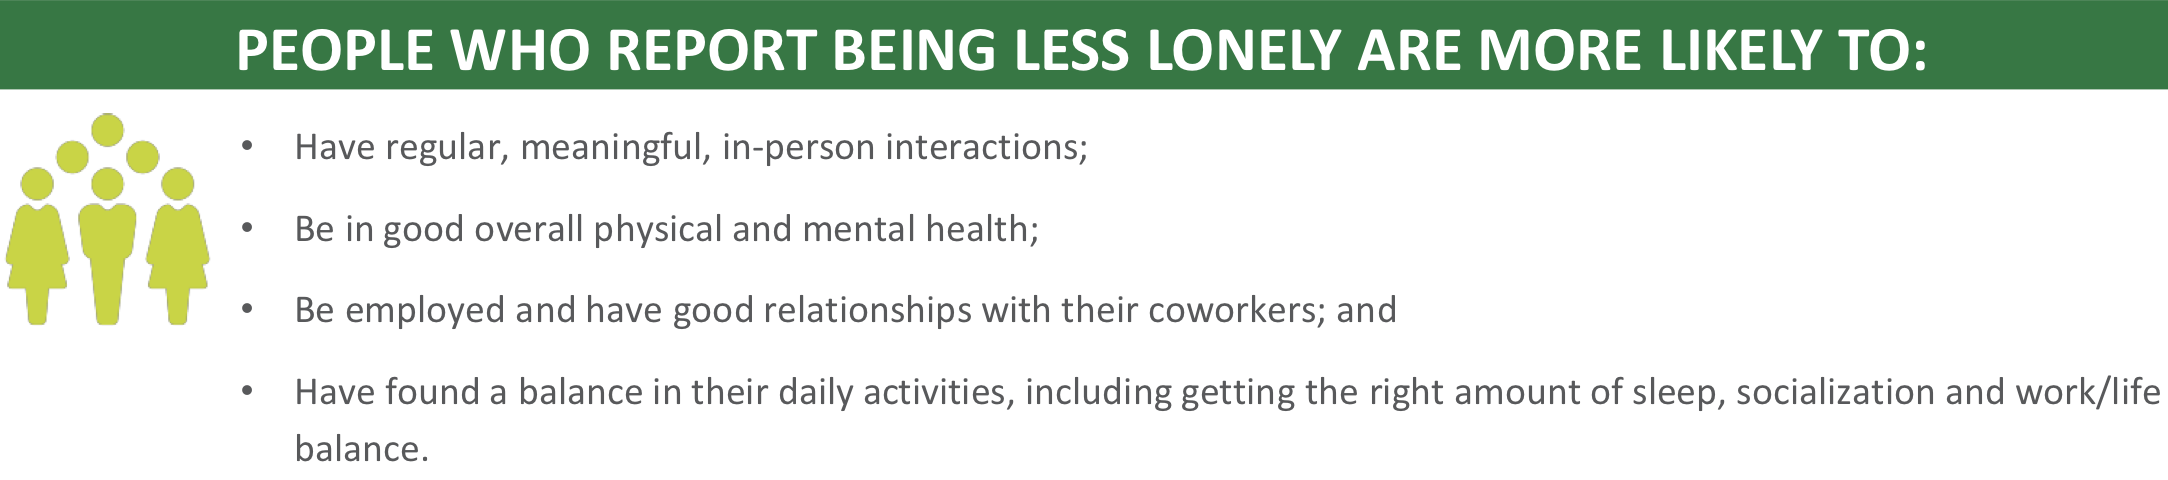 list of what people who report being less likely are more likely to have